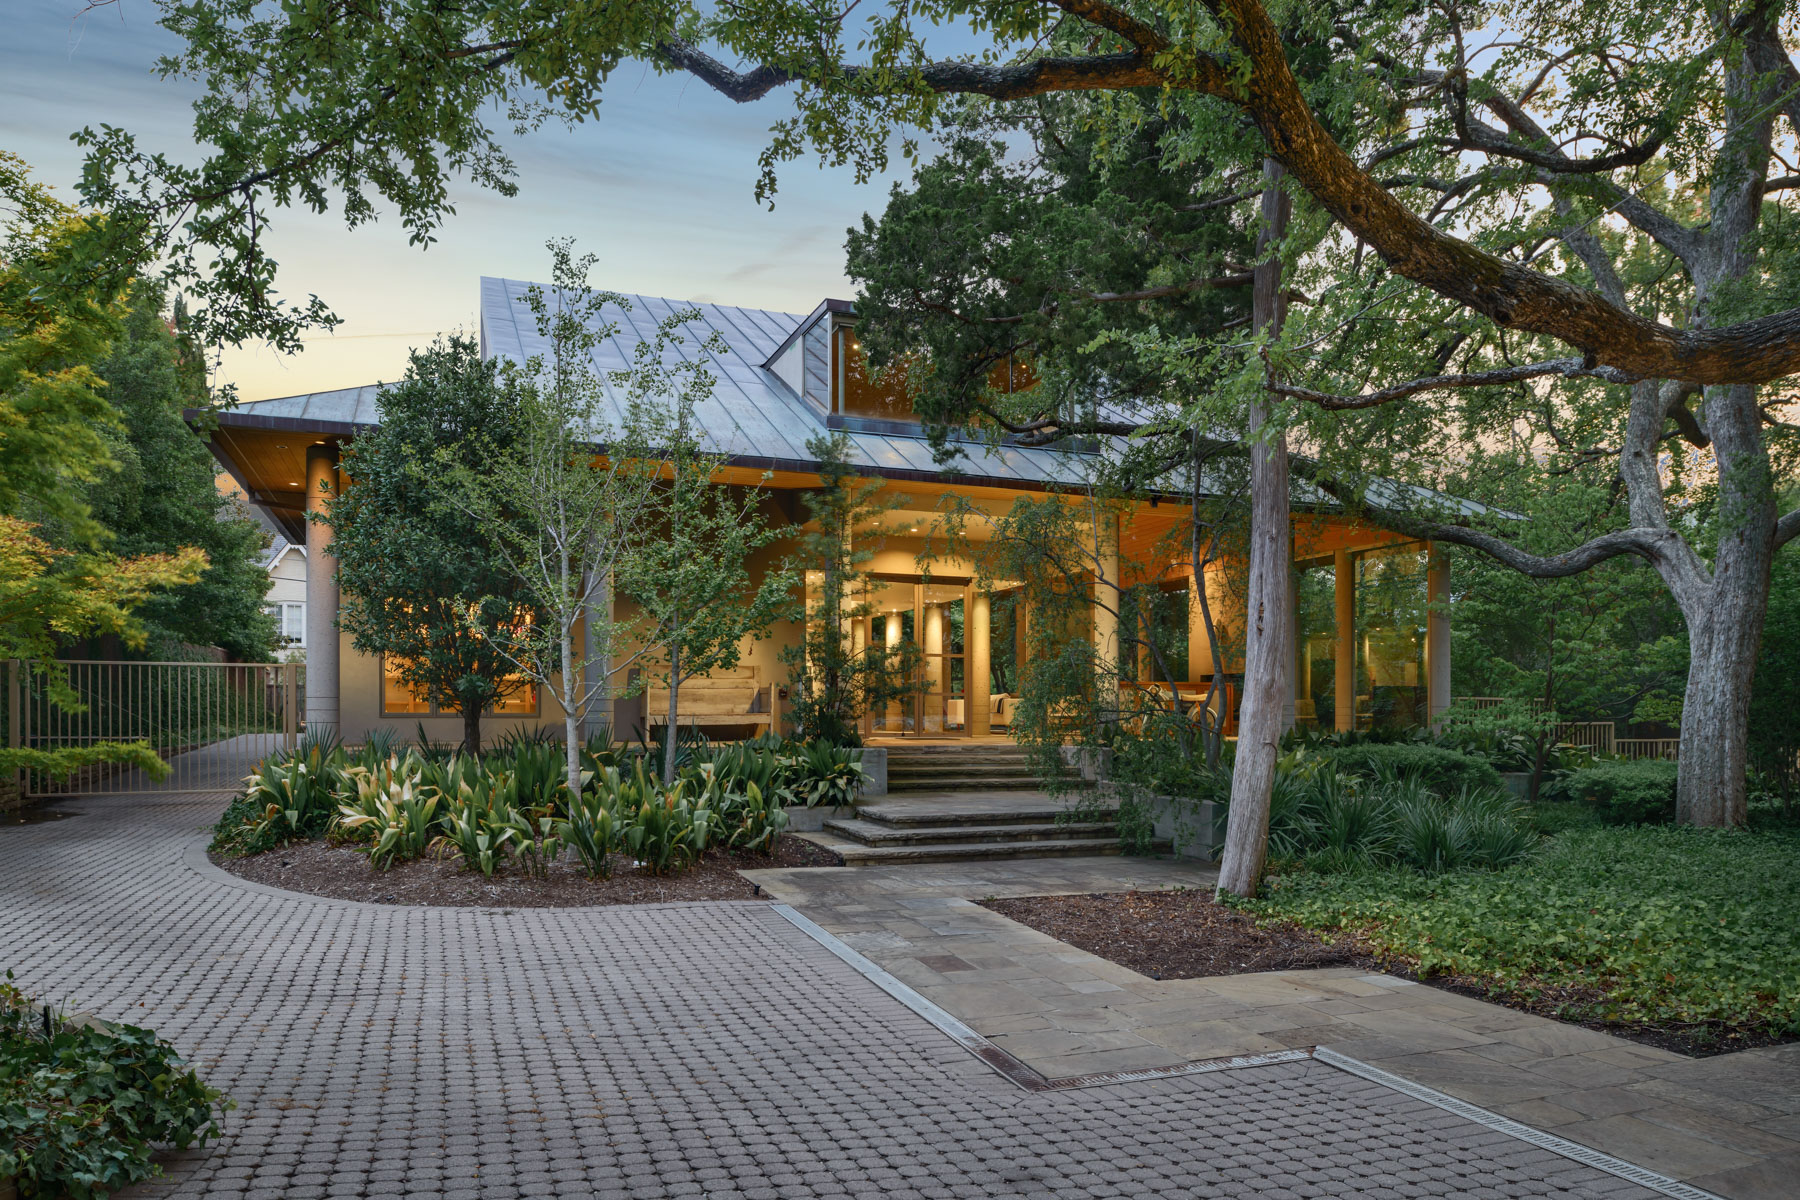 Single Family Homes for Sale at Bud Oglesby Designed Home in Highland Park 3709 Lexington Avenue Highland Park, Texas 75205 United States